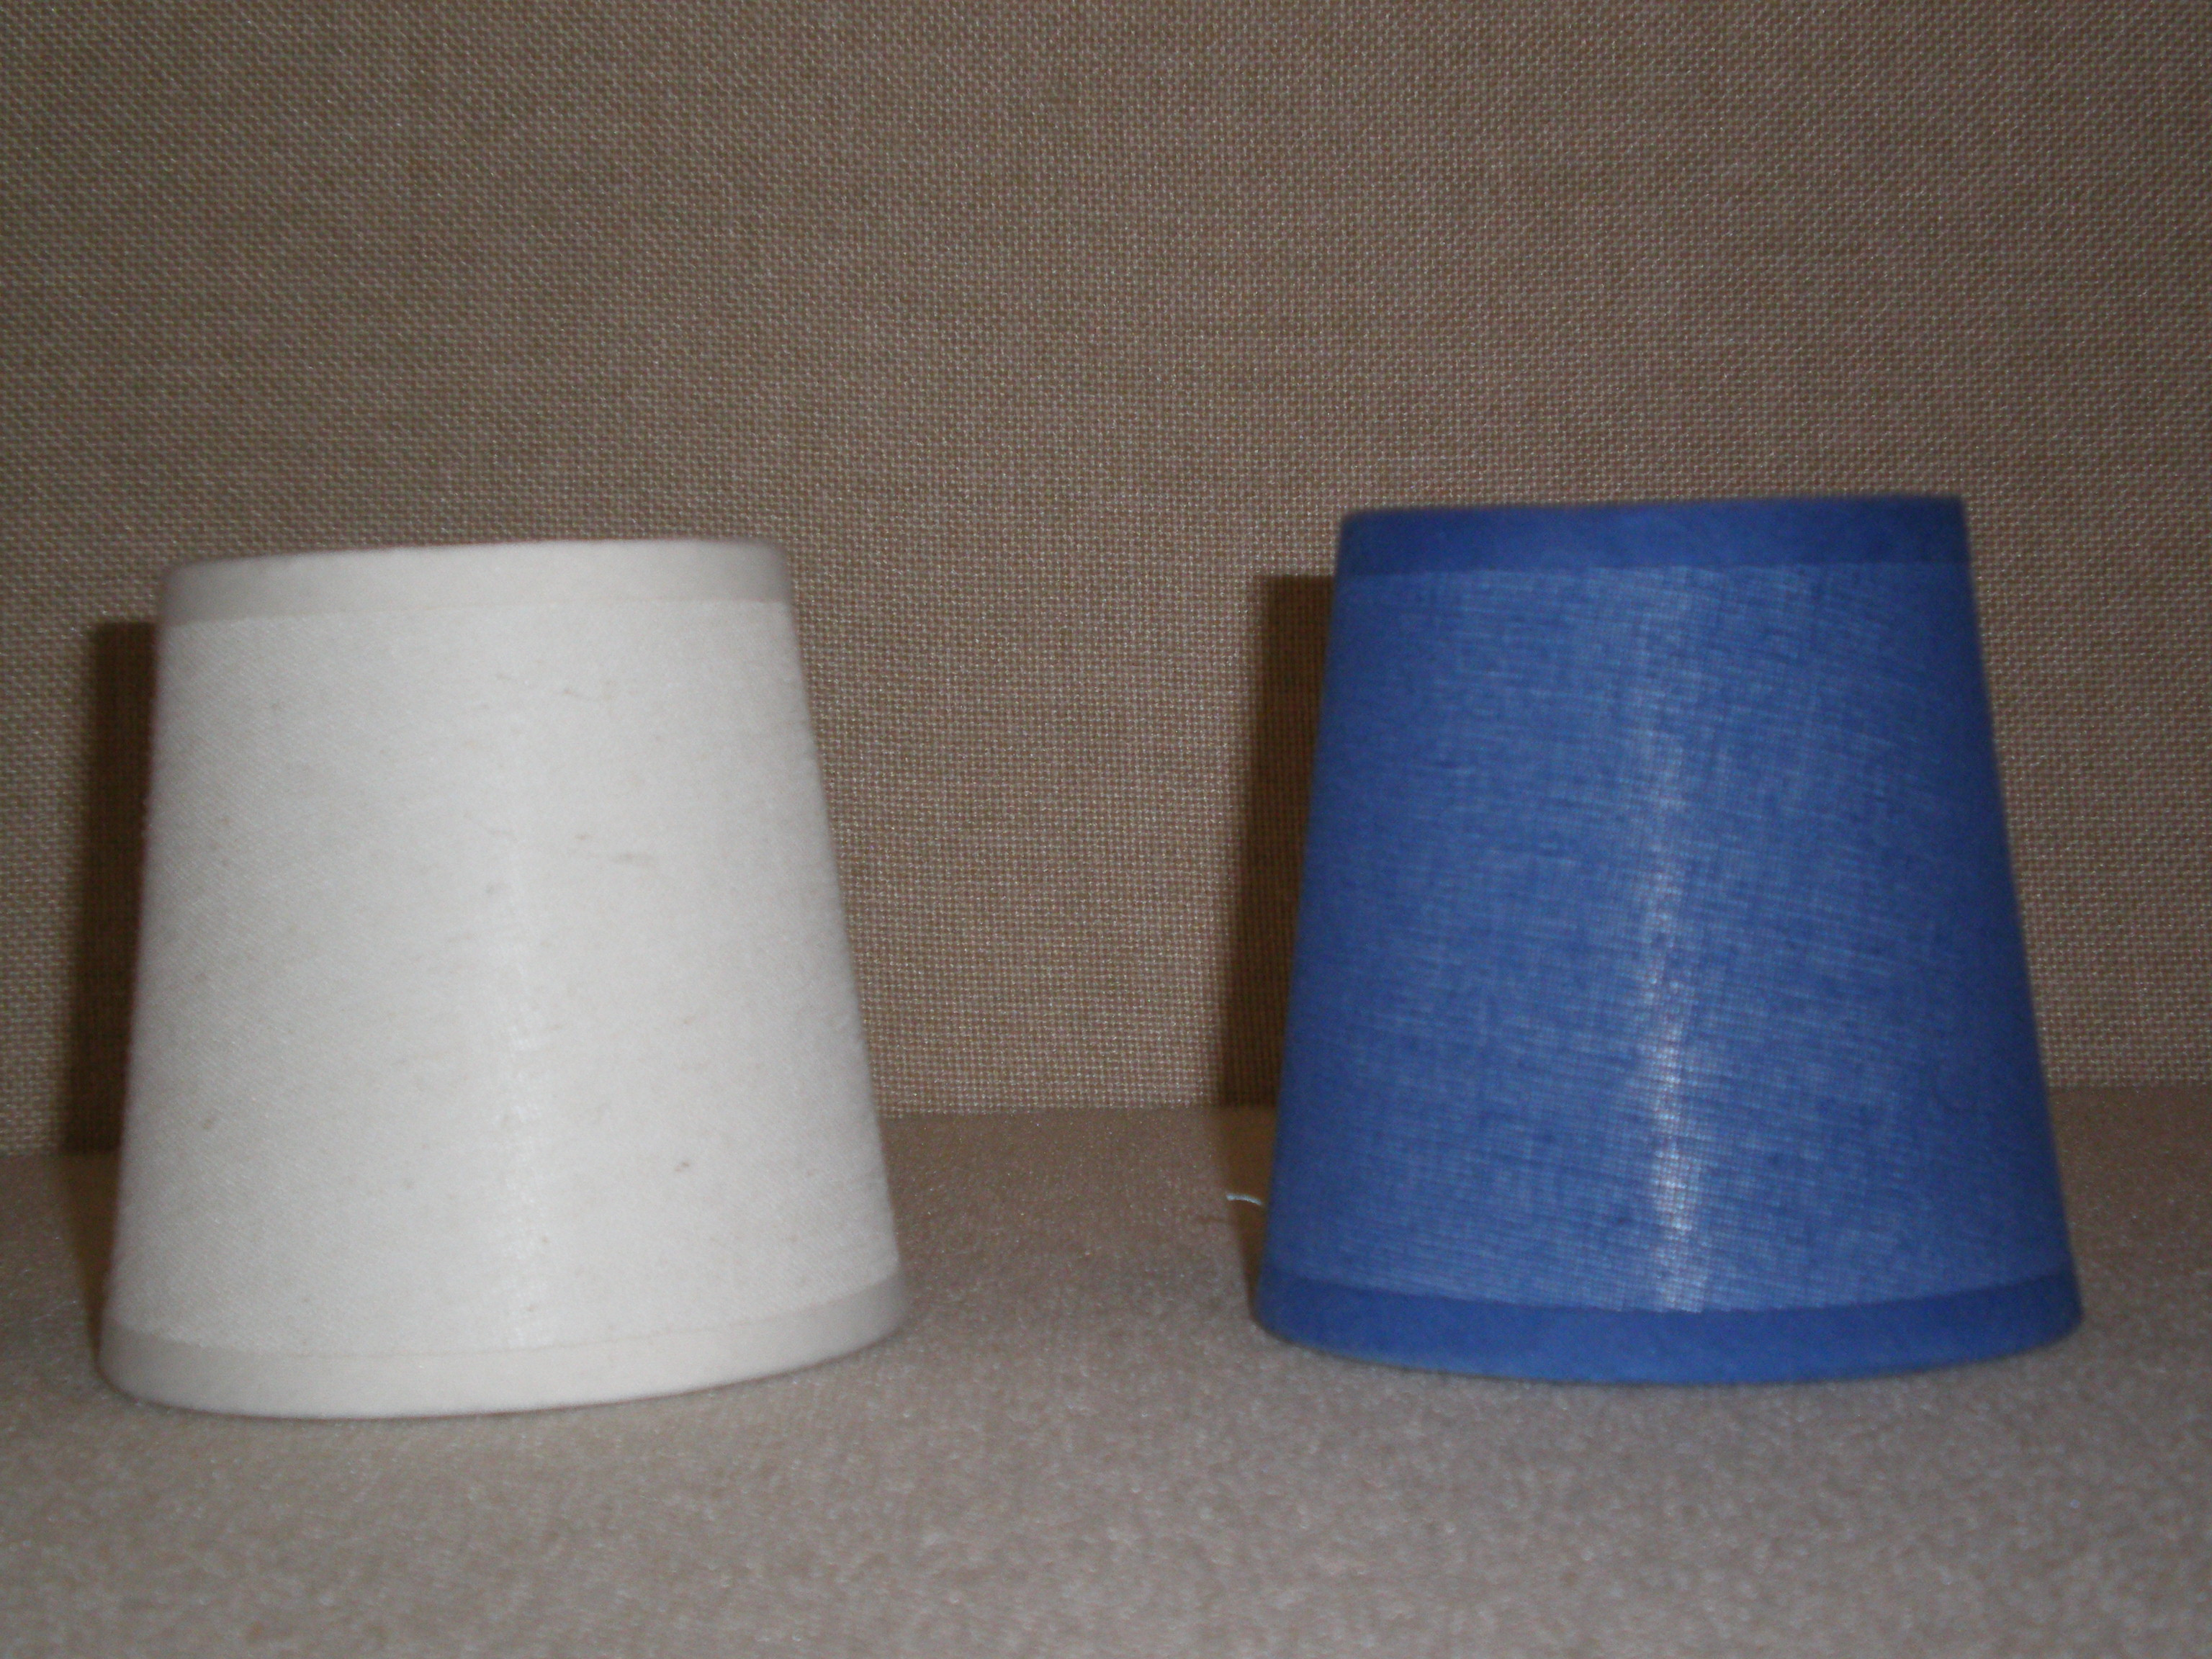 upholstery-paint-blue-lamp-shades.jpg